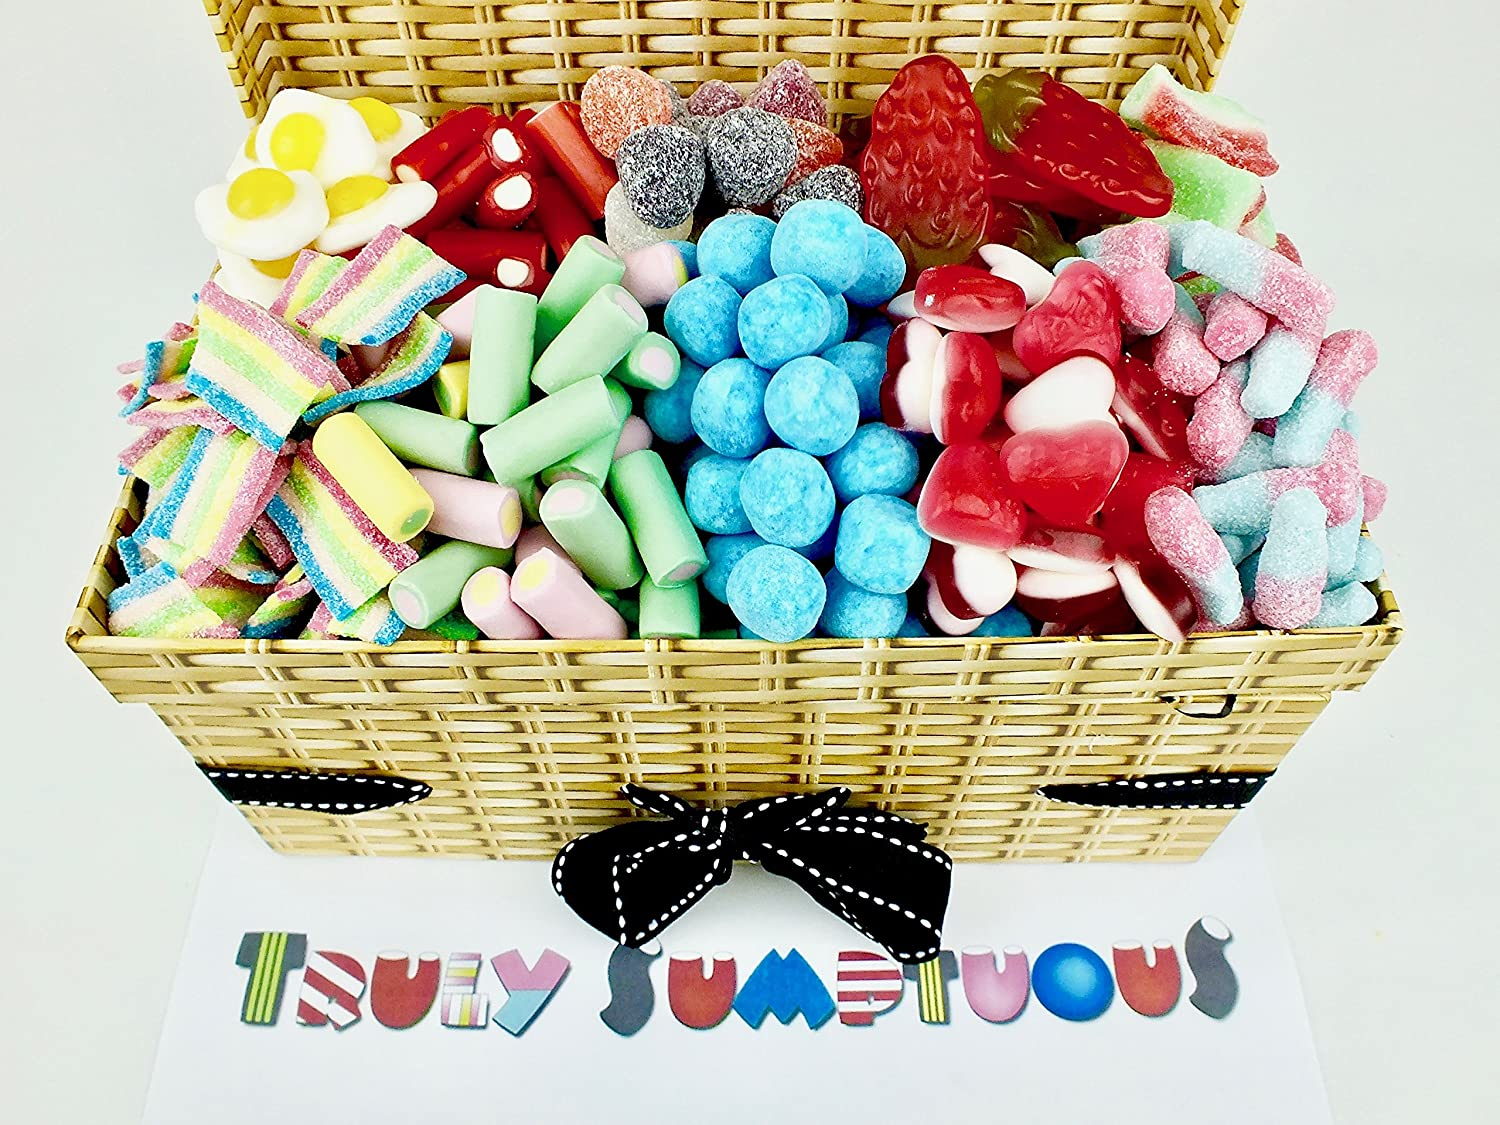 Truly sumptuous easter gift hampers the must have haribo hamper truly sumptuous easter gift hampers pick and mix luxury hamper 12kg of all your negle Choice Image